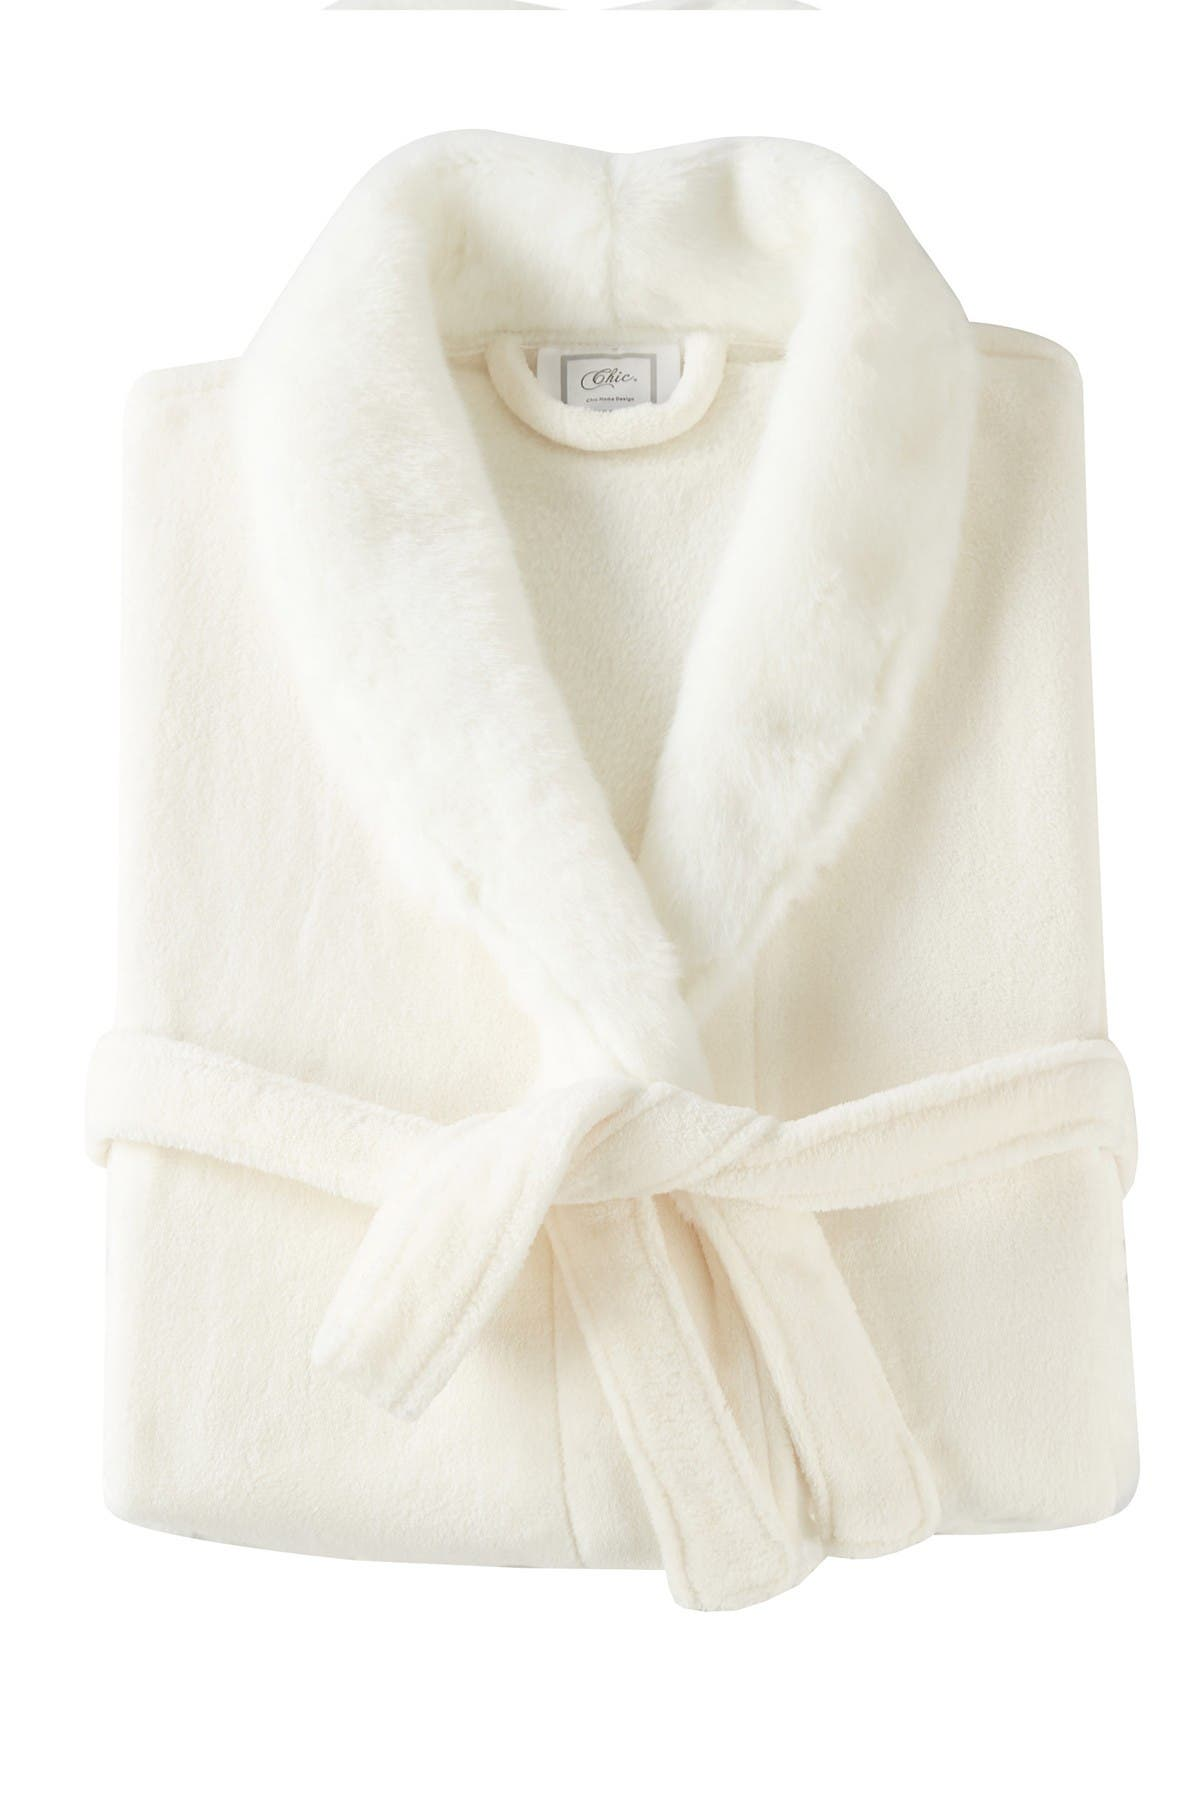 Chic Home Bedding Rolo Faux Fur Trim Robe - Beige at Nordstrom Rack